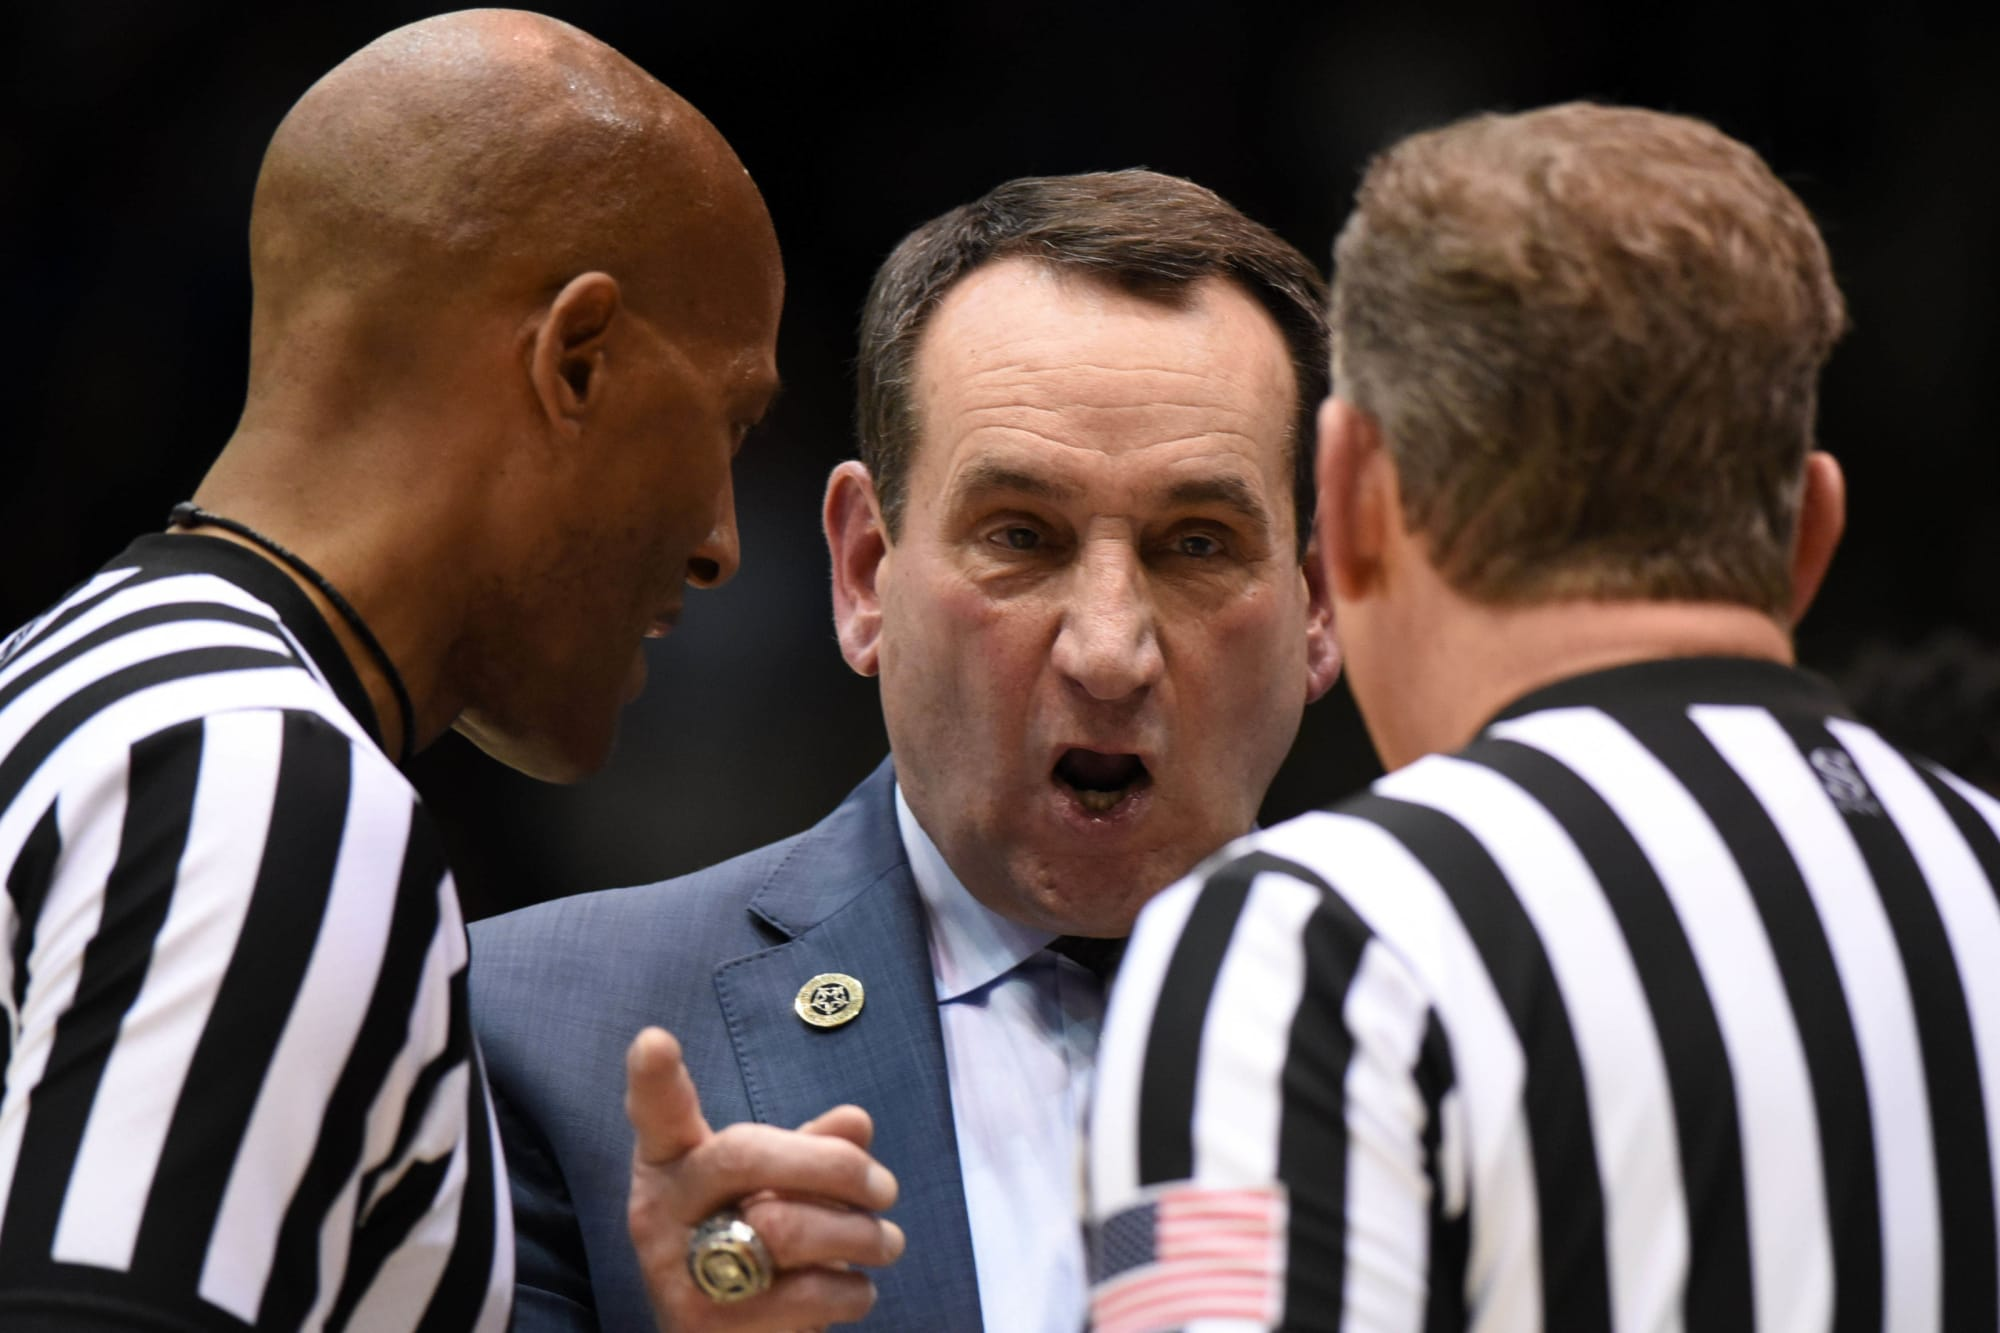 Duke basketball head coach Mike Krzyzewski should take blame for loss